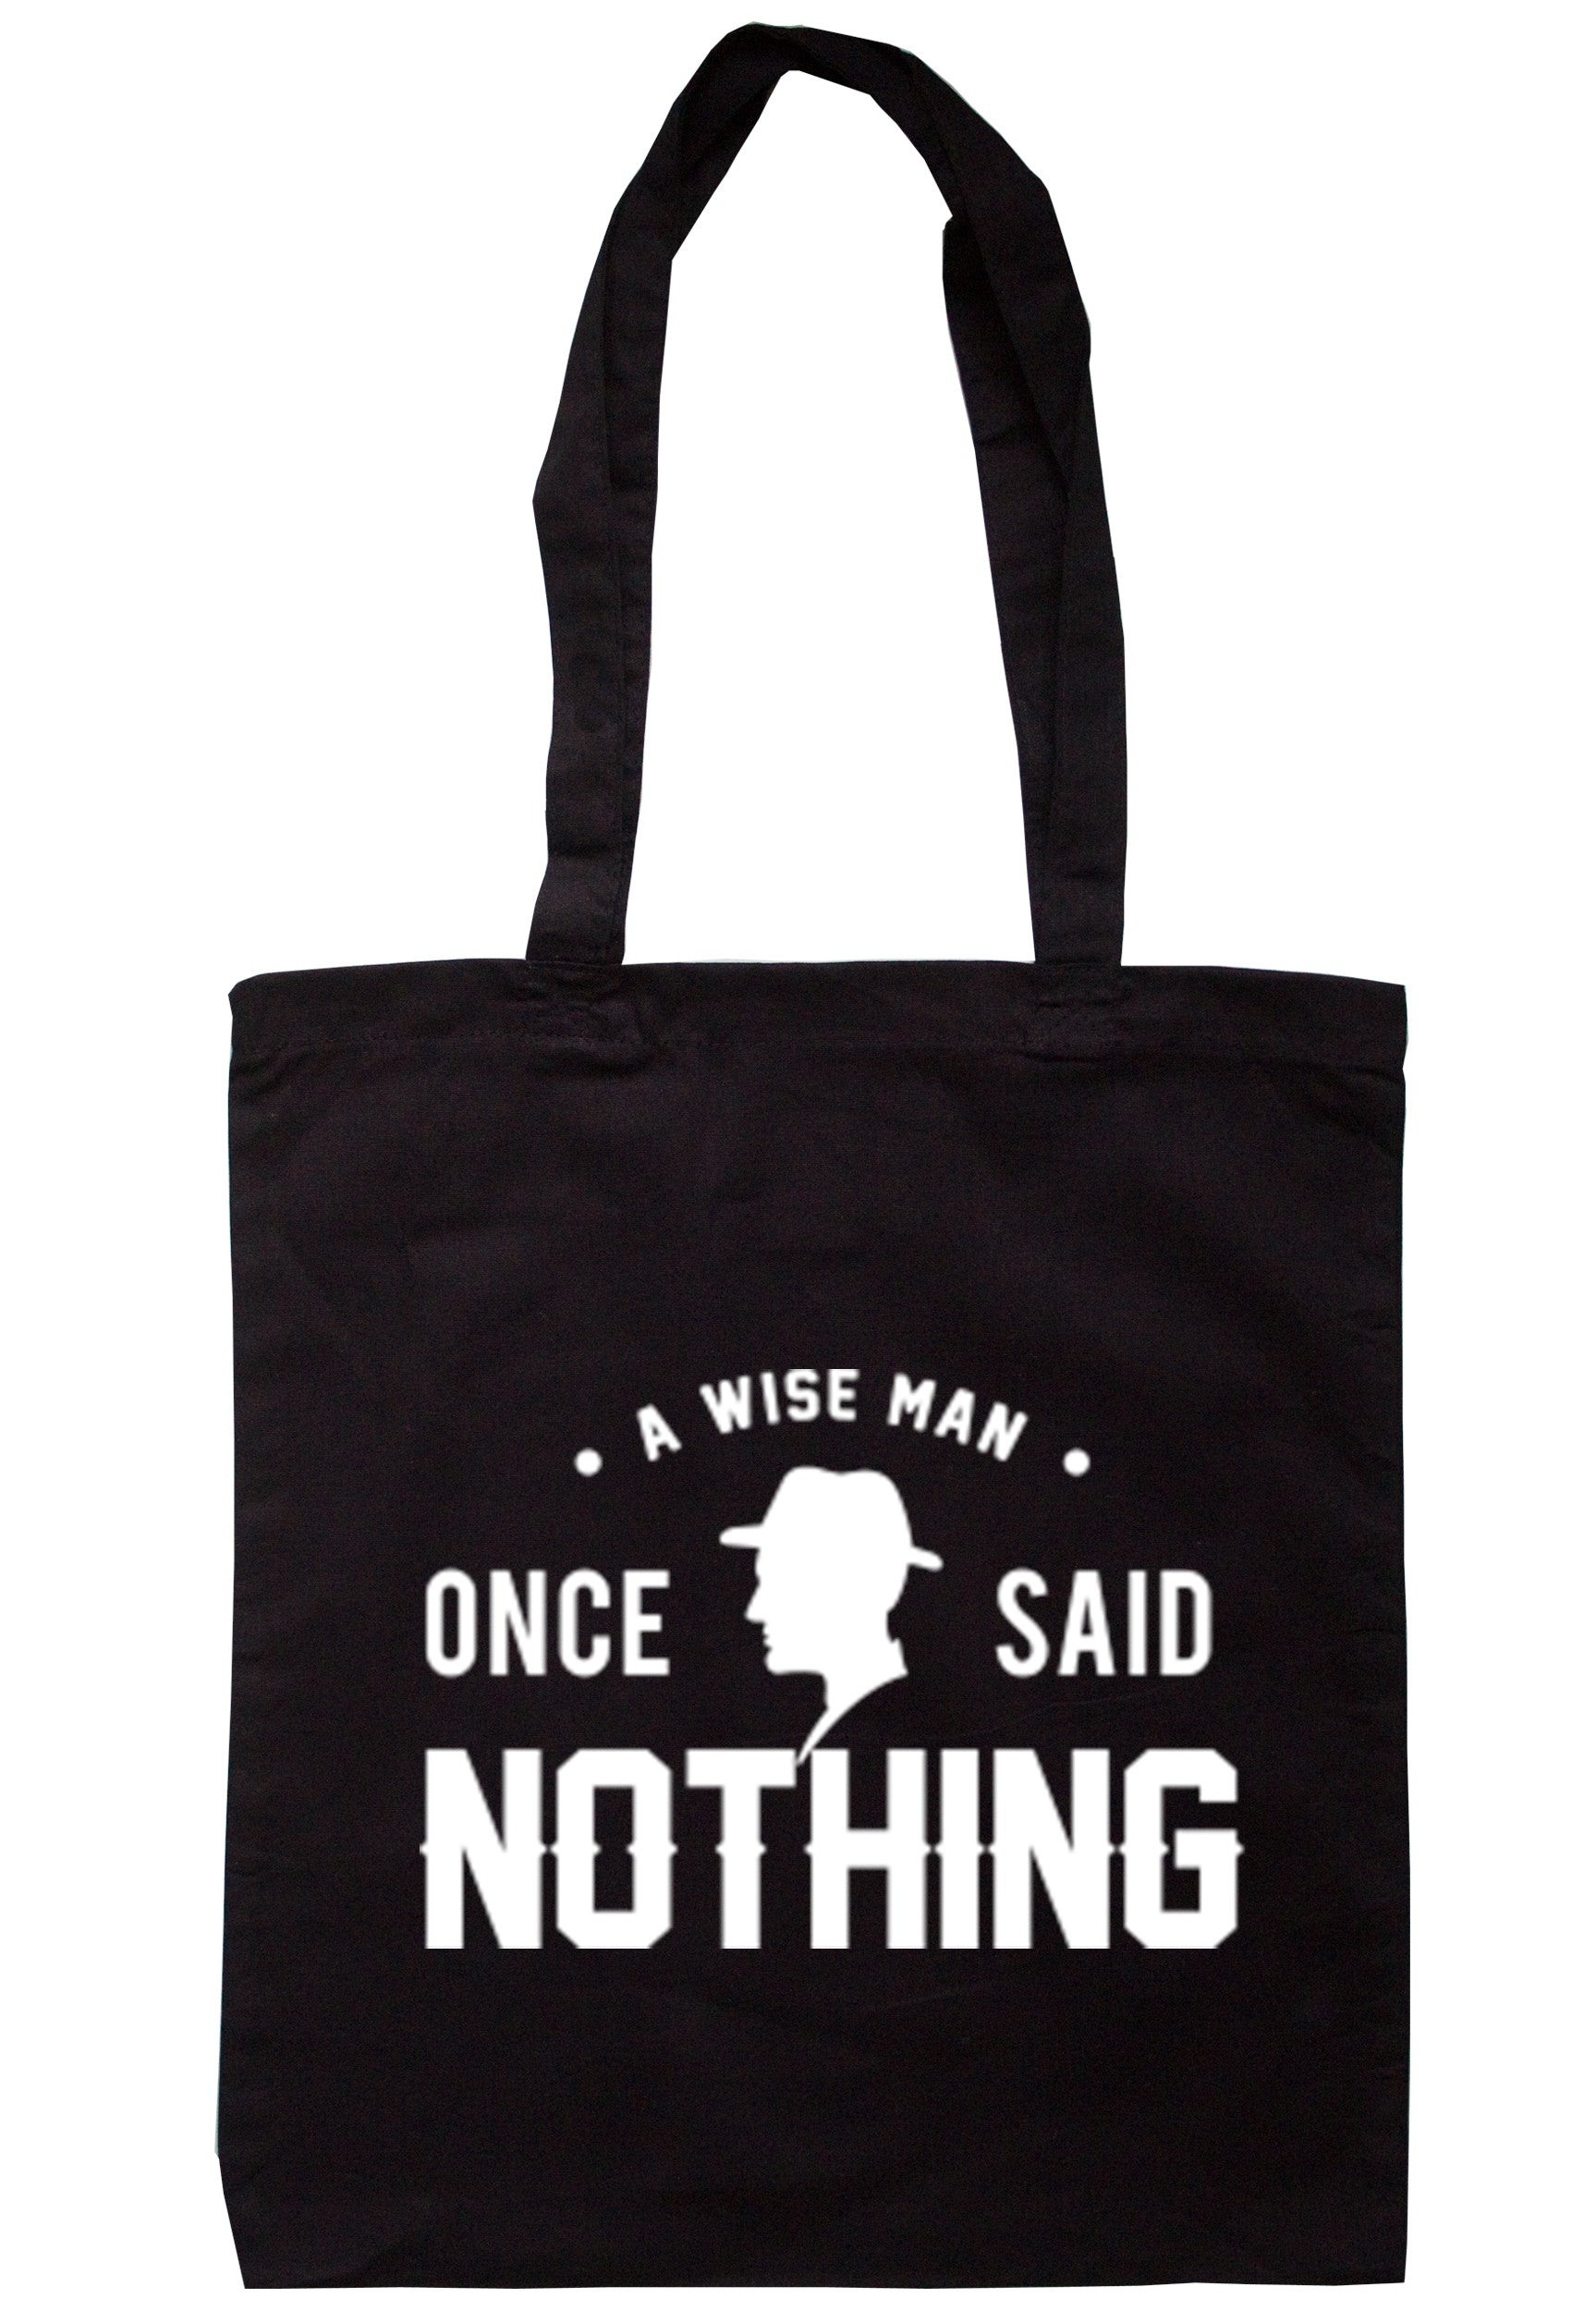 A Wise Man Once Said Nothing Tote Bag TB0176 - Illustrated Identity Ltd.